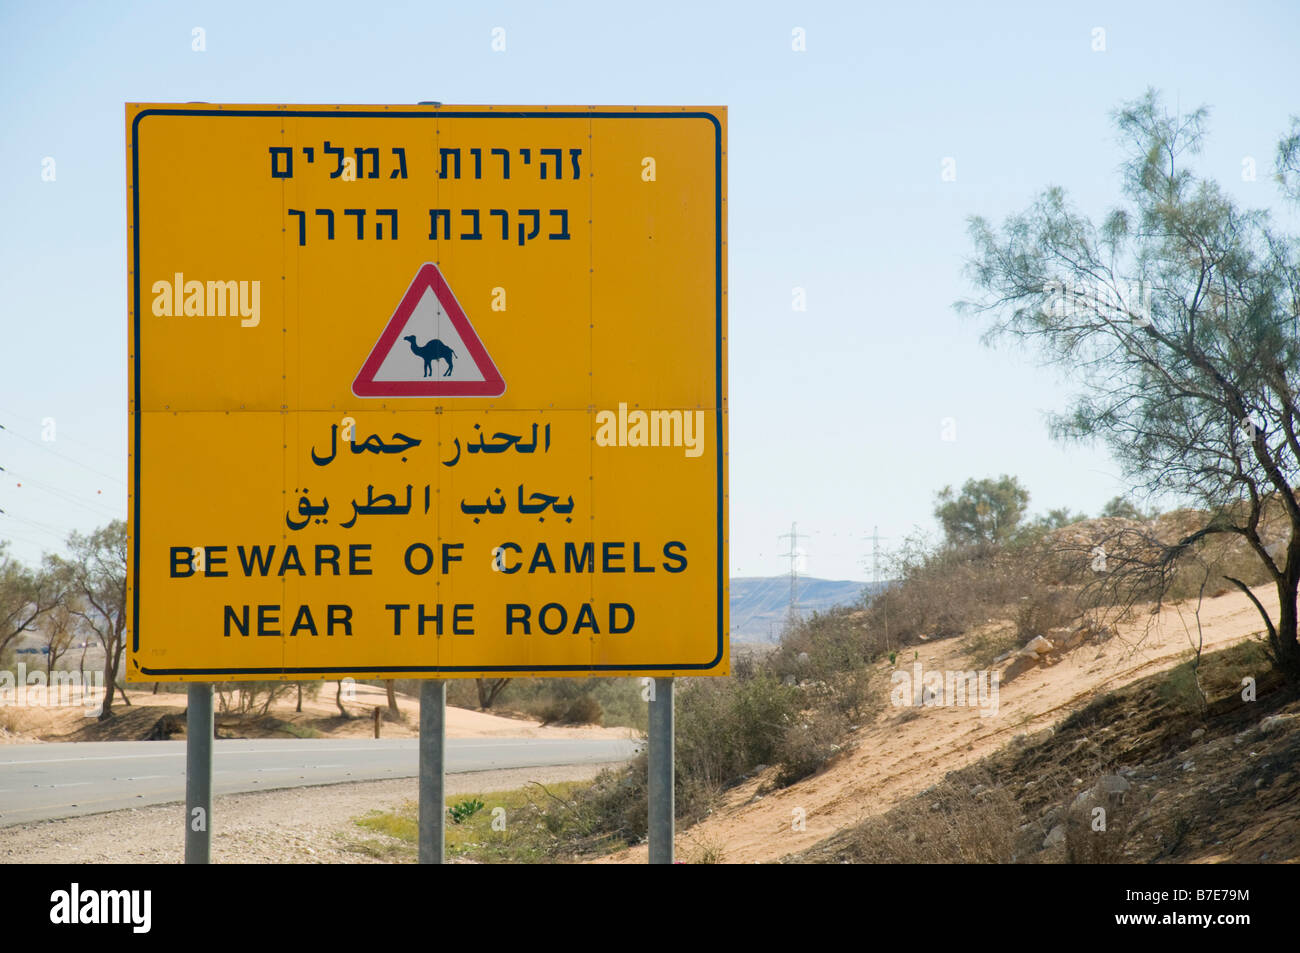 Israel Negev A large yellow warning sign Beware of Camels near the road Stock Photo